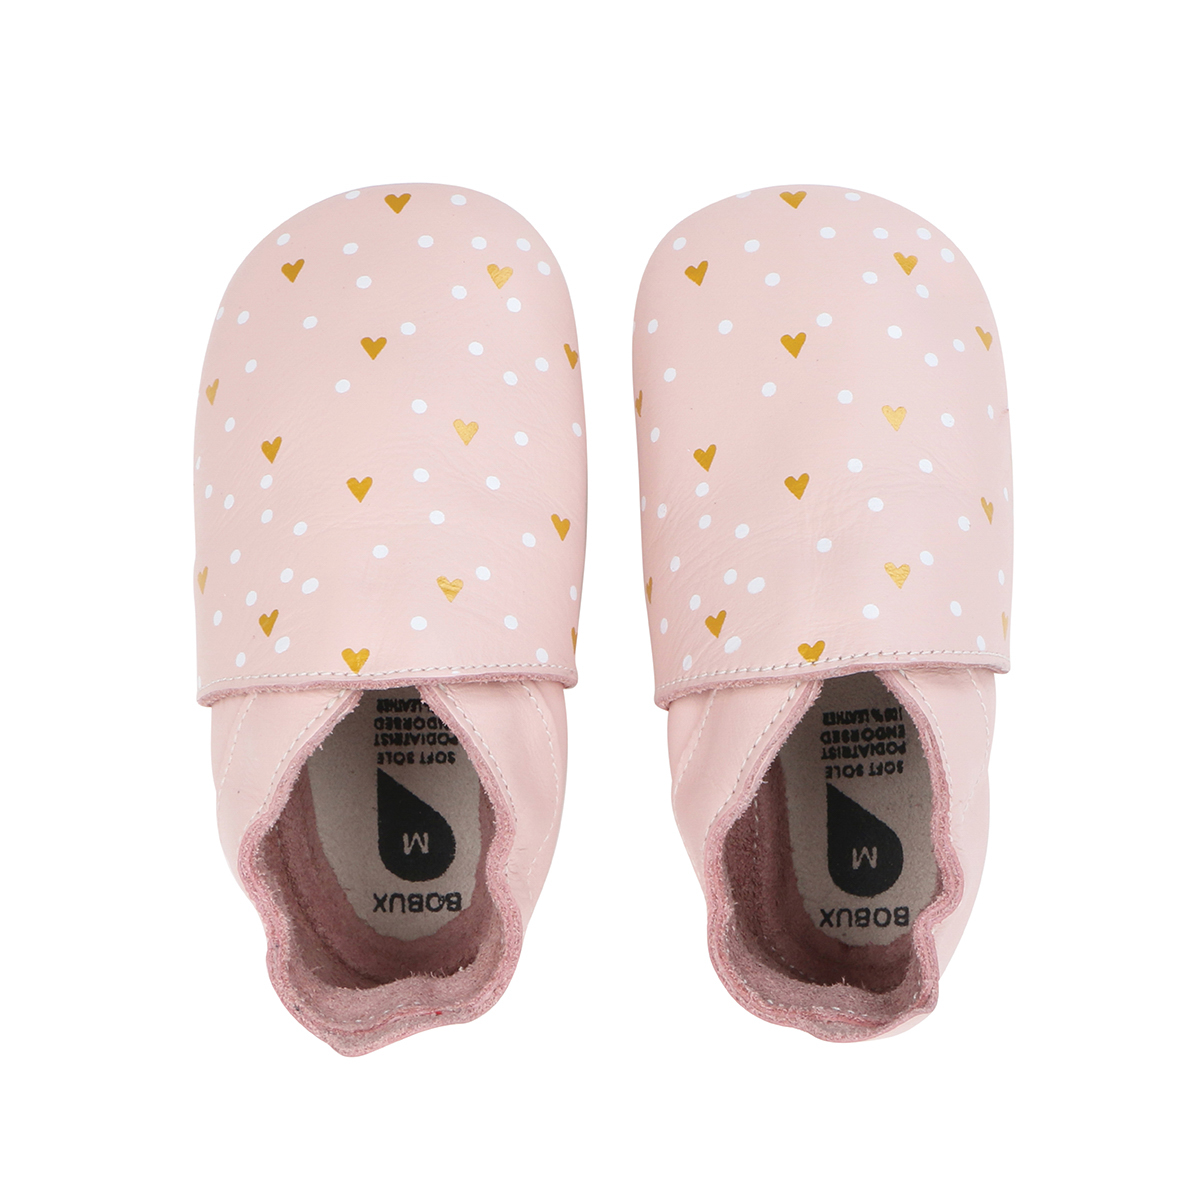 6d8a65940d0d2 Chaussons 1000-038-04 - Blossom Hearts